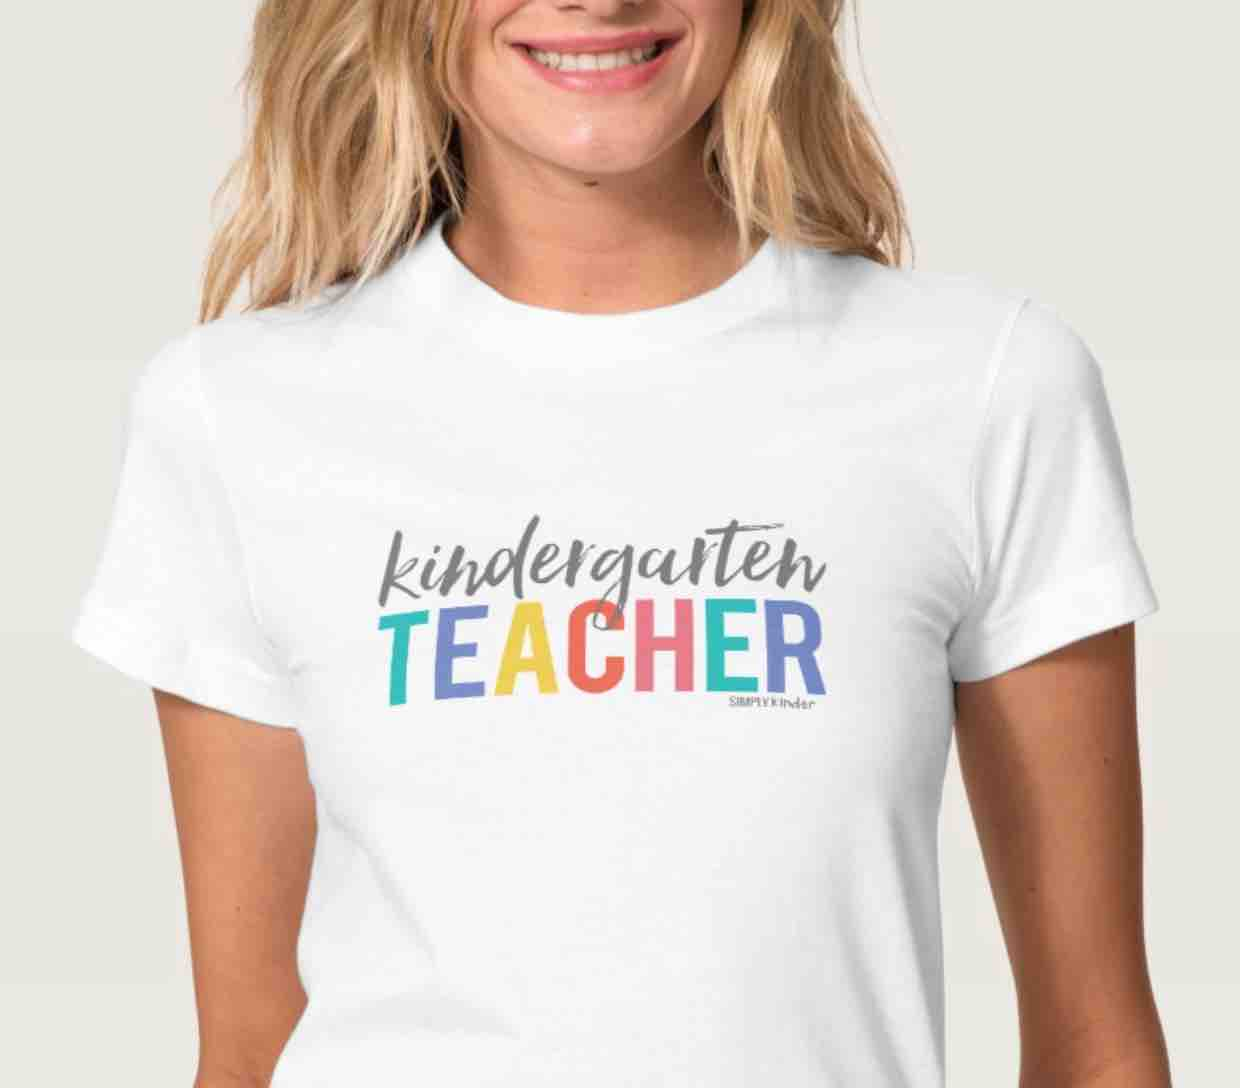 Kindergarten Teacher Kindergarten shirt from Simply Kinder